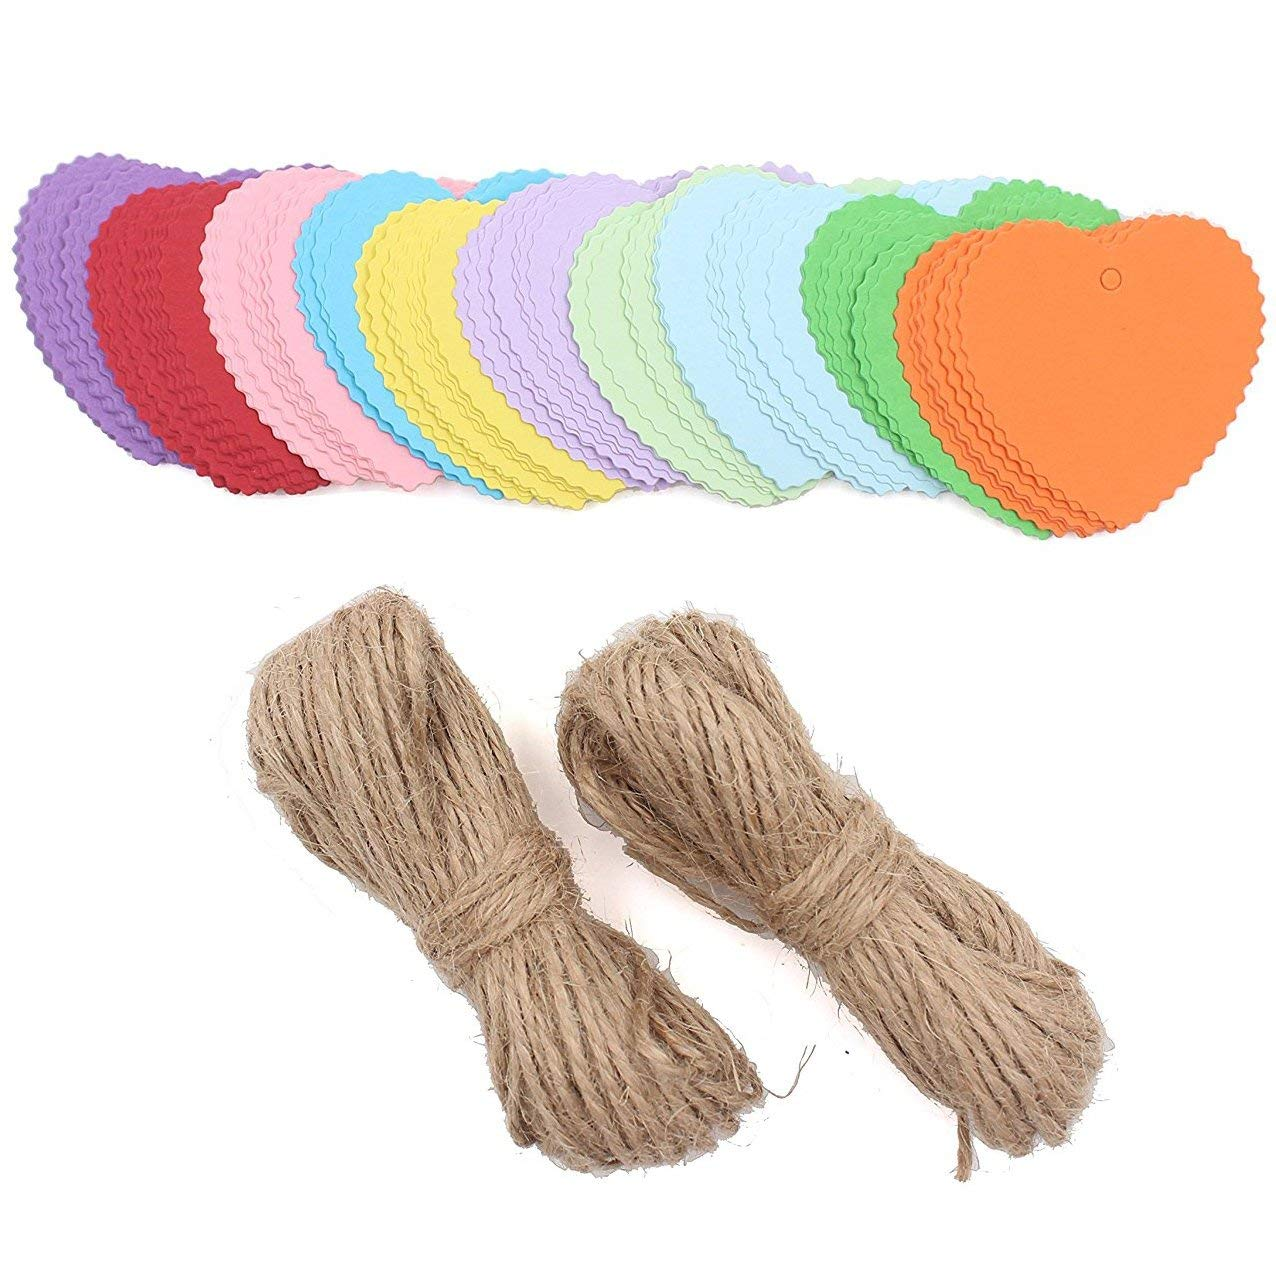 Zicome 150 Piece Colorful Paper Gift Tags with 50 Feet Natural Jute Twine, Heart Shaped, 10 Bright Colors